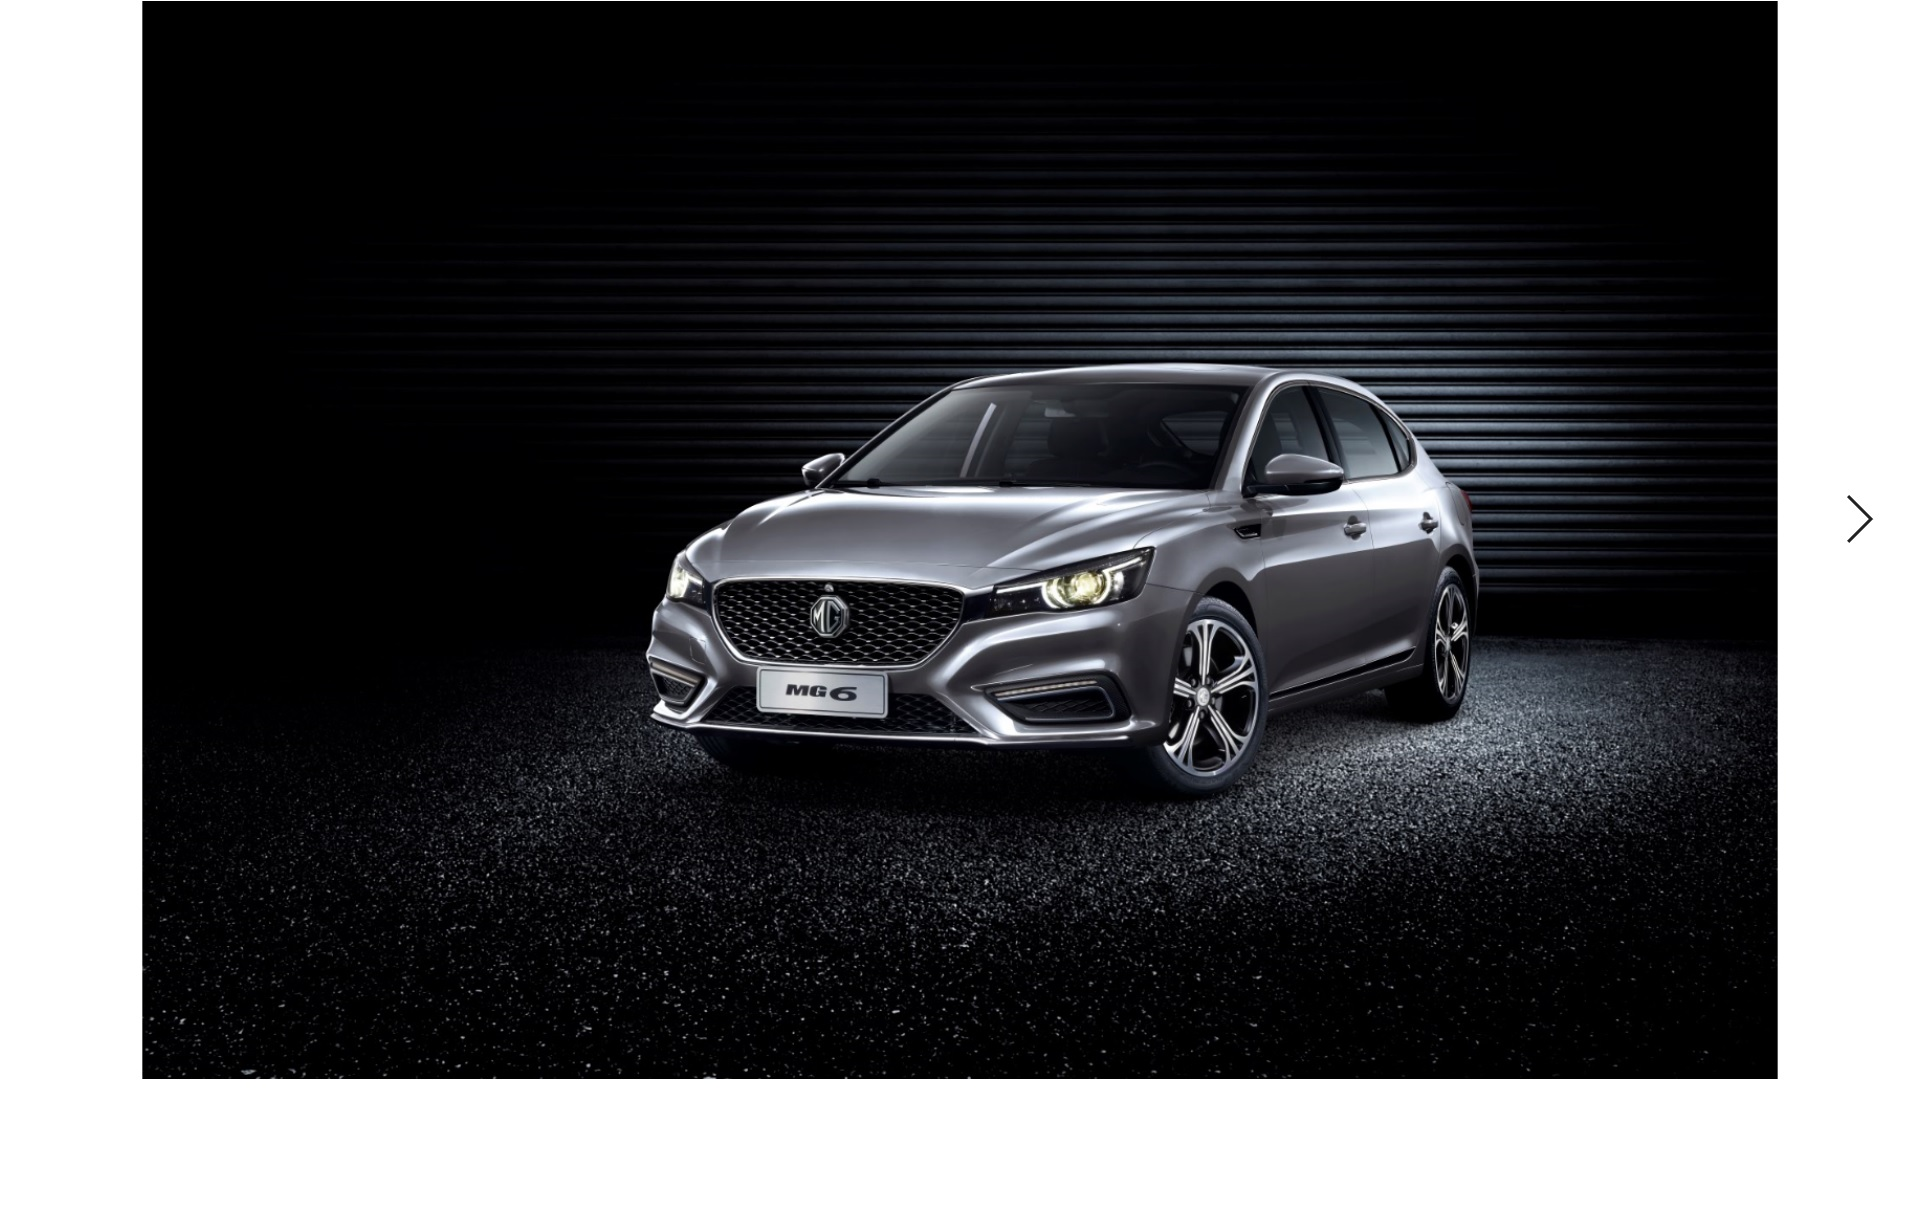 MG Motor Launches all-new MG6 in the Middle East